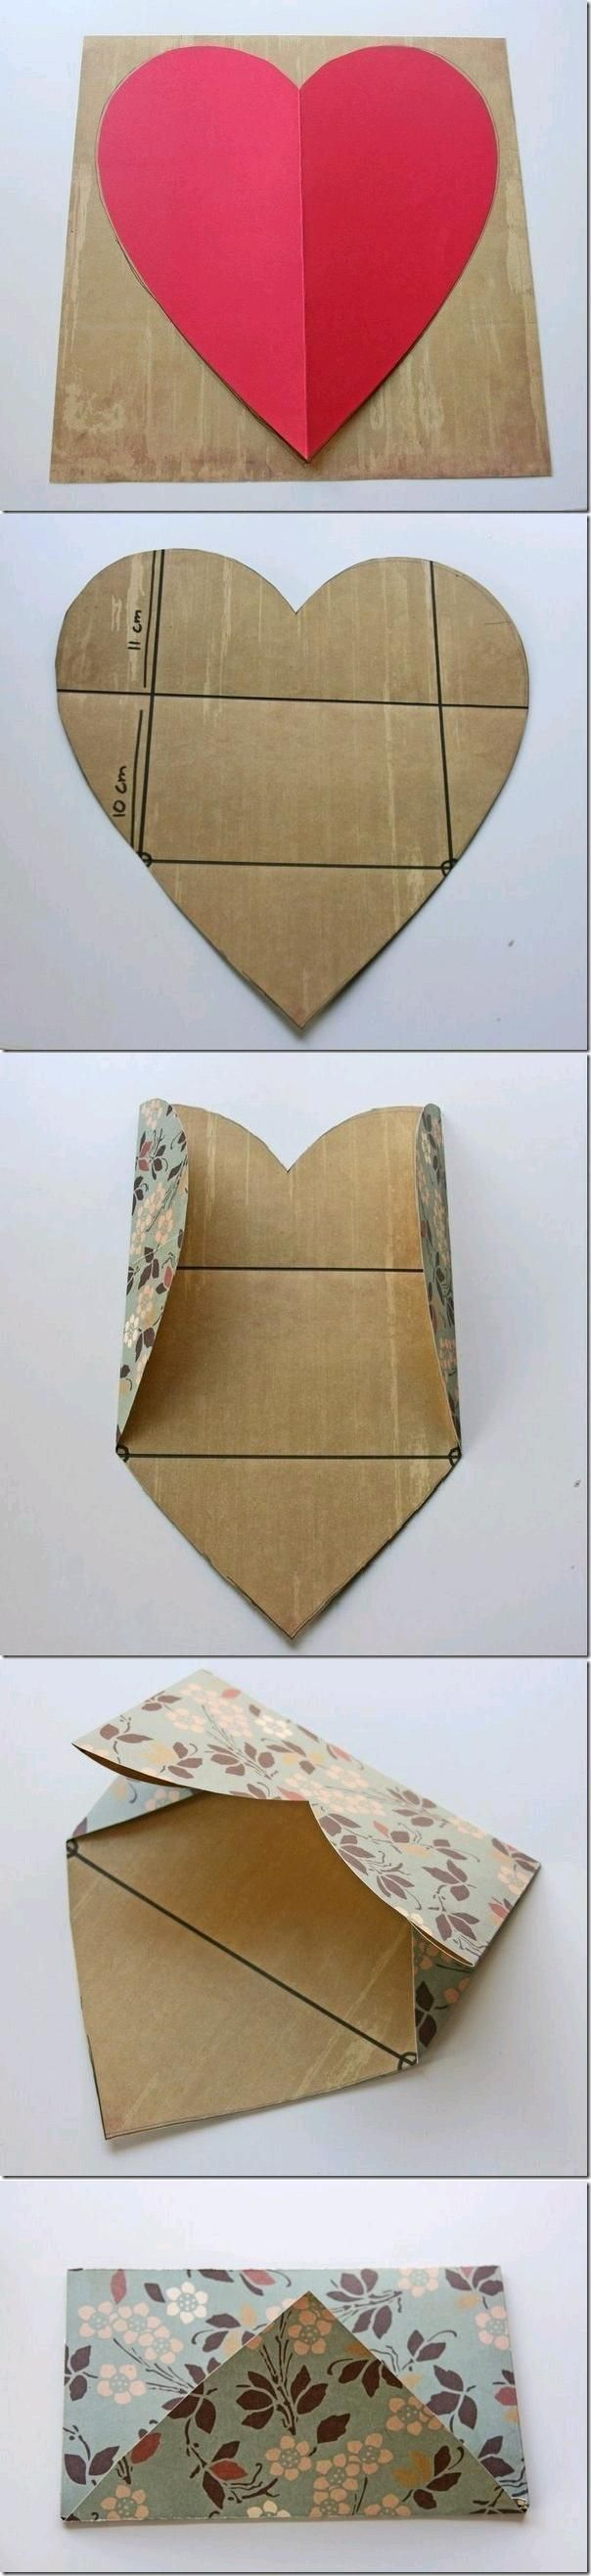 diy envelope from a heart - 'cause a handwritten card is the best gift..